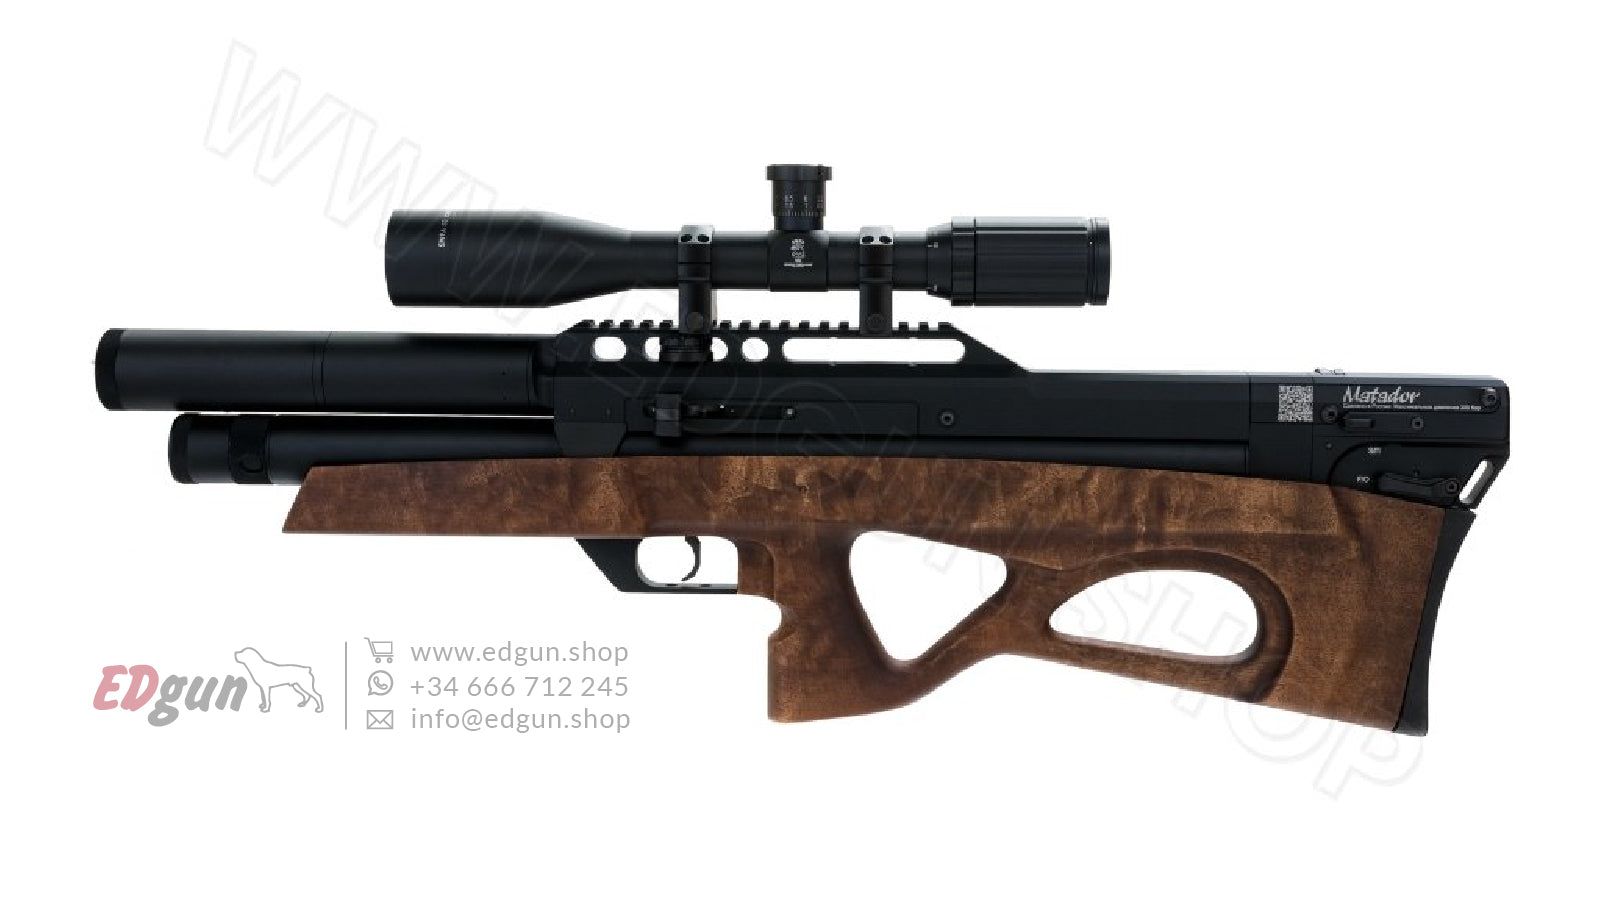 EDgun Matador R5M <br/> Technical service